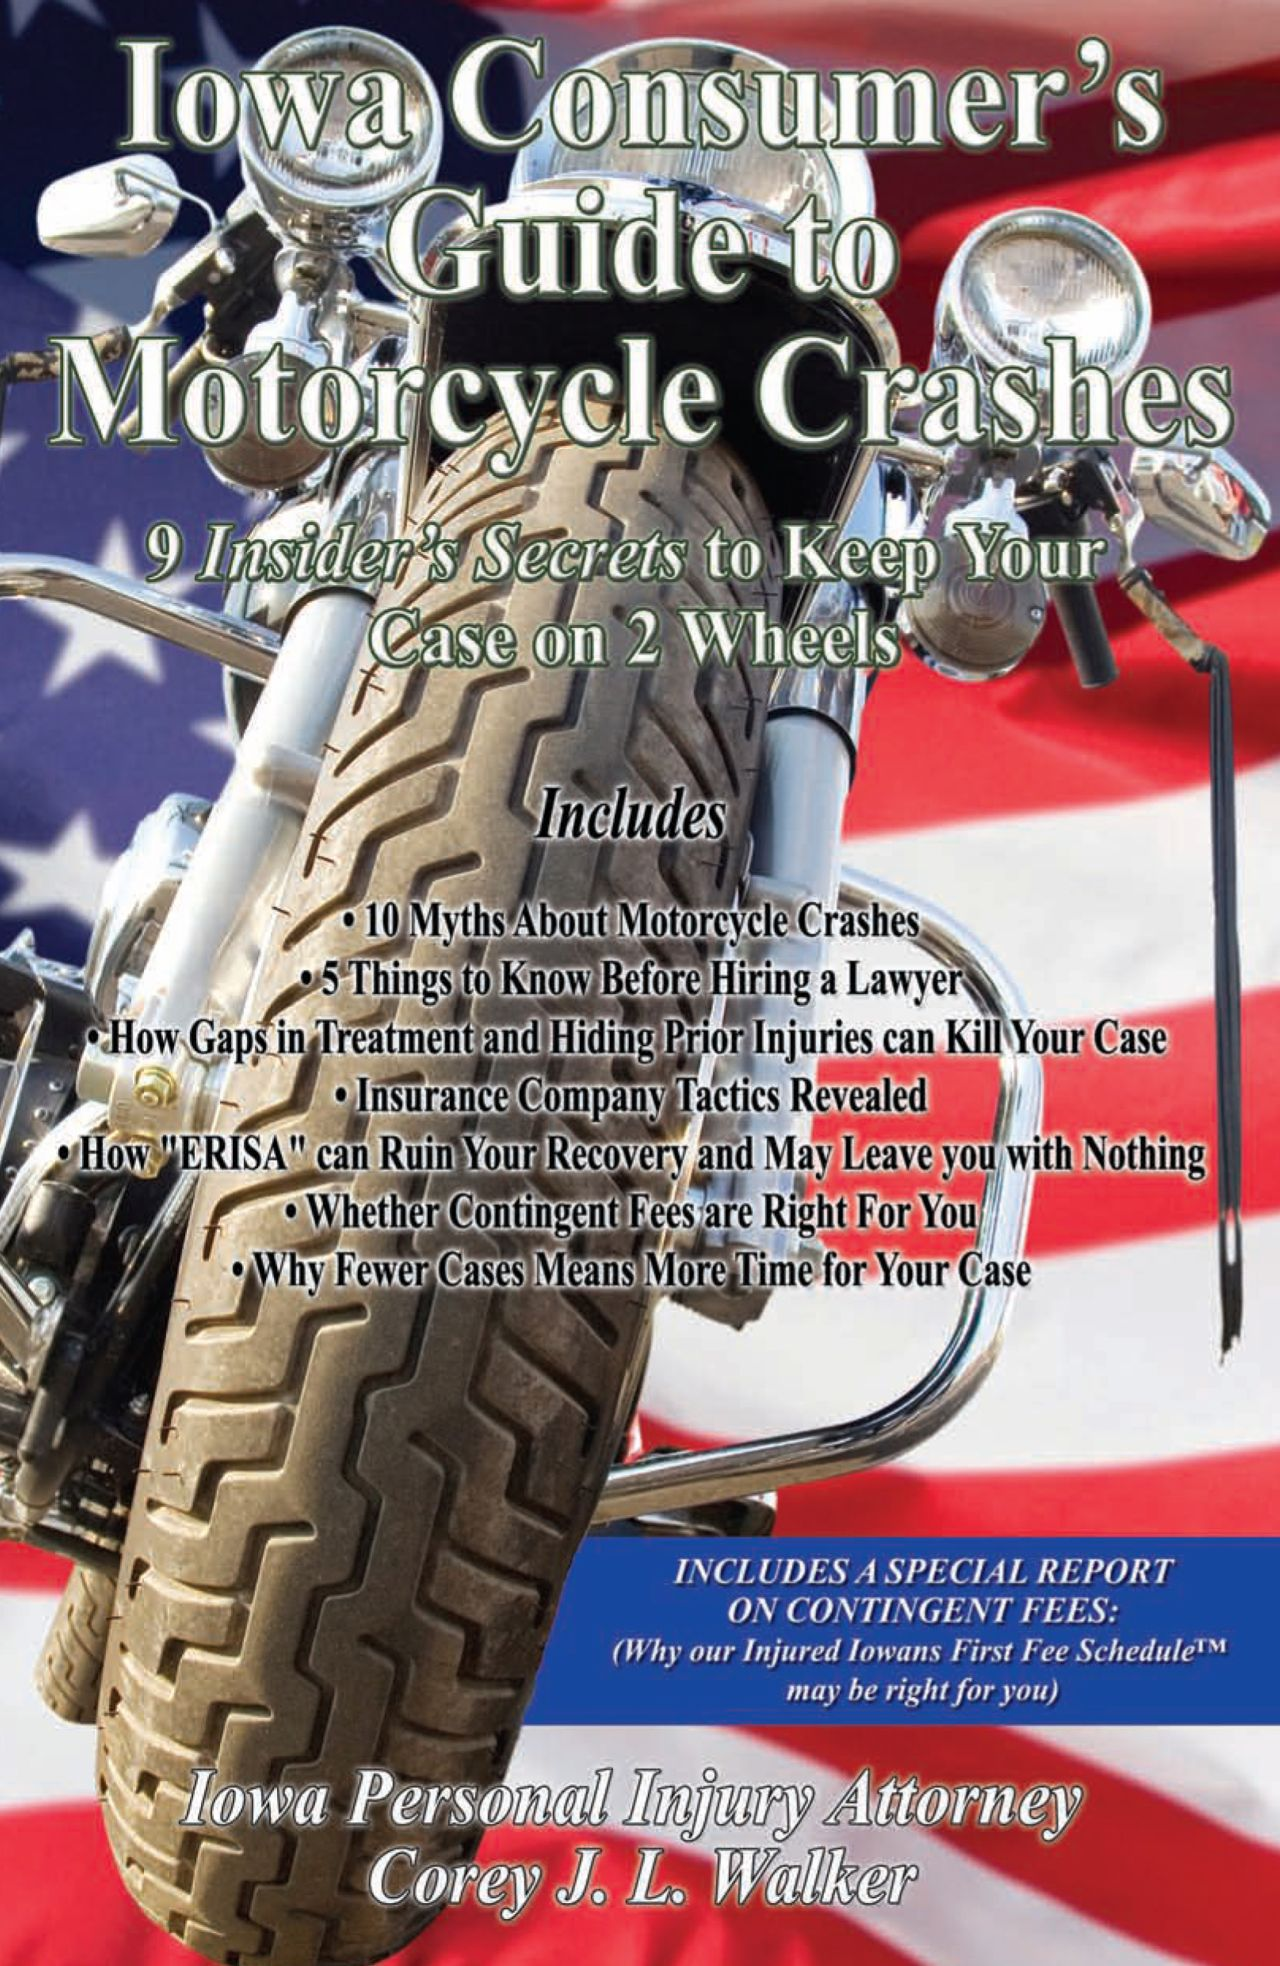 Iowa Guide to Motorcycle Crashes